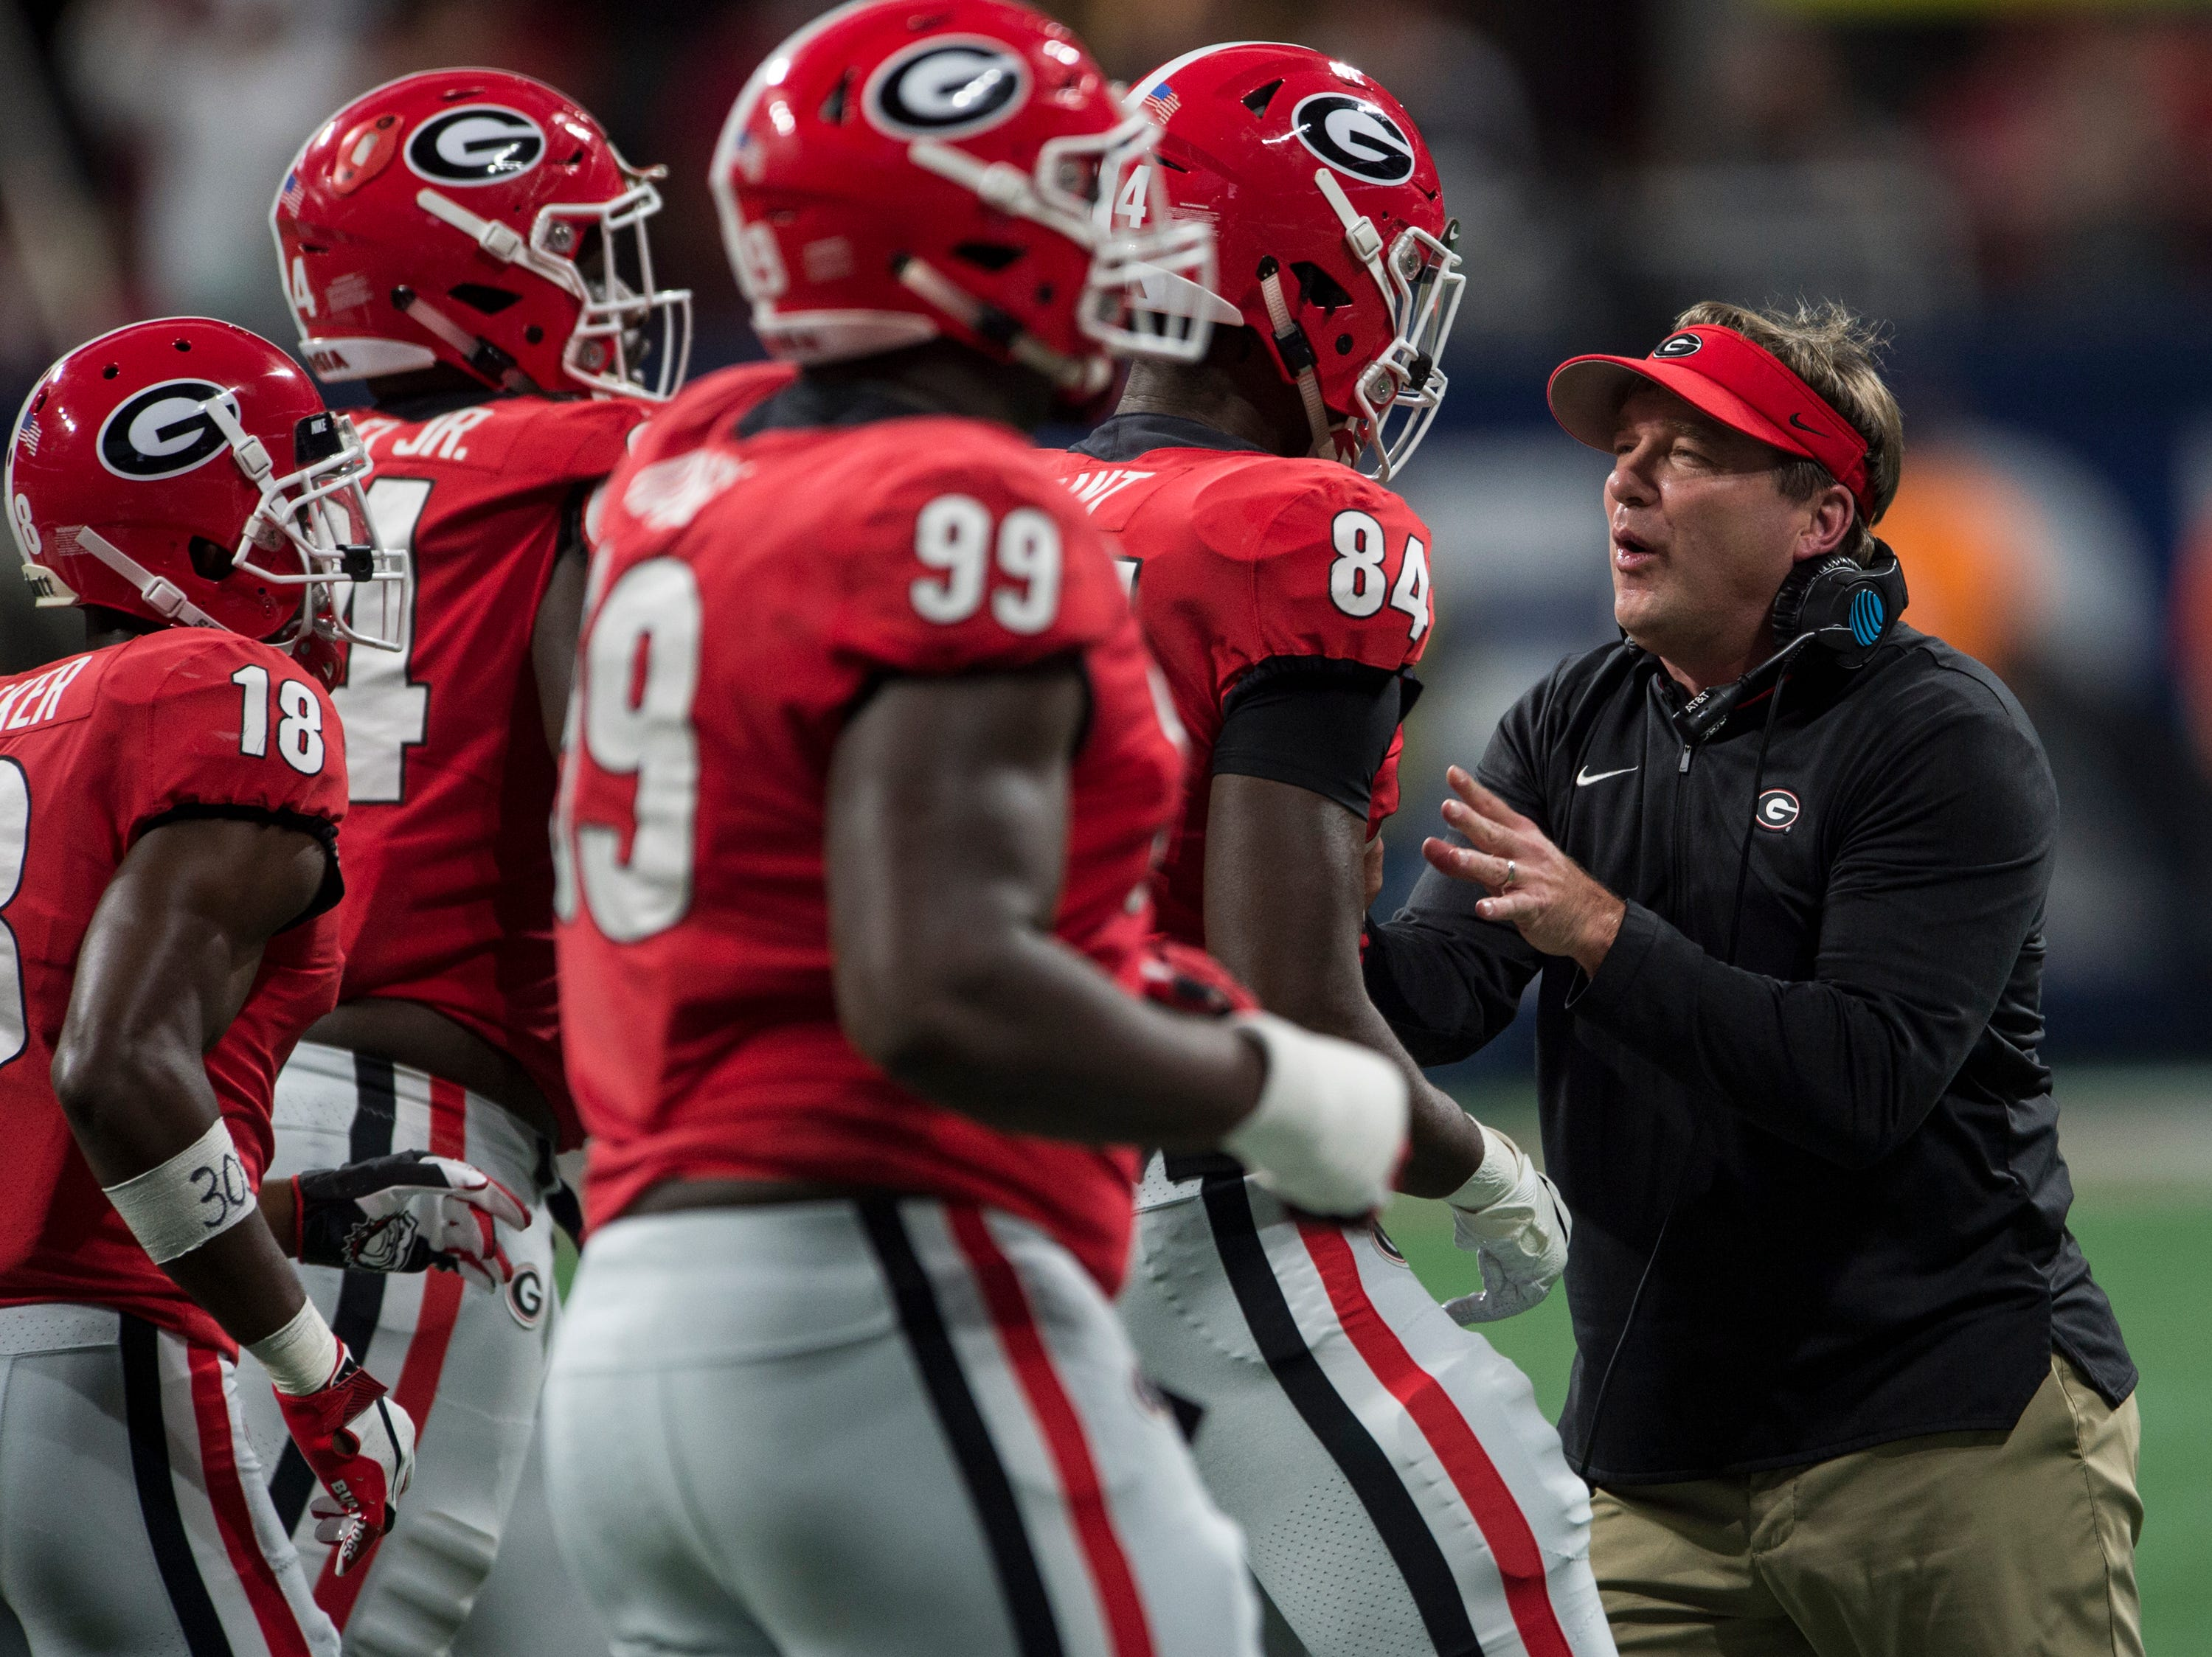 Georgia head coach Kirby Smart talks with his players as they come off the field during the SEC Championship game at Mercedes-Benz Stadium in Atlanta, Ga., on Saturday Dec. 1, 2018. Alabama defeated Georgia 35-28.